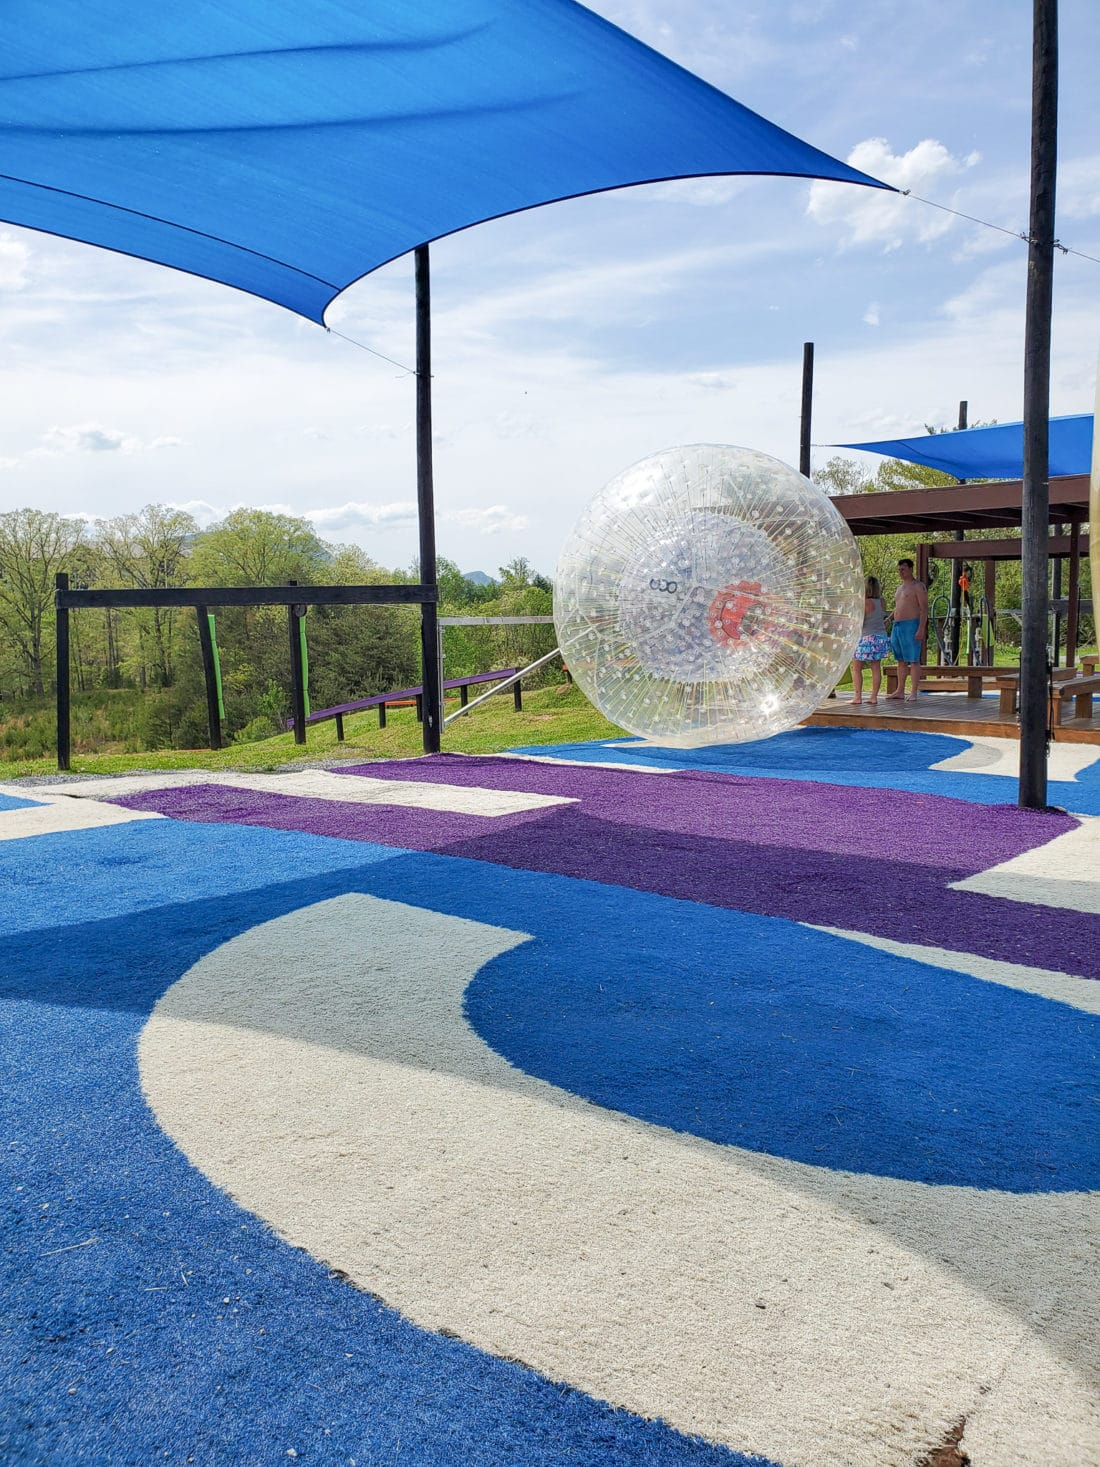 Outdoor Gravity Park Platform. Outdoor Gravity Park is an amazing adventure destination in Pigeon Forge, Tennessee at the foothills of the Smoky Mountains featuring zorbing, an attraction straight out of New Zealand.